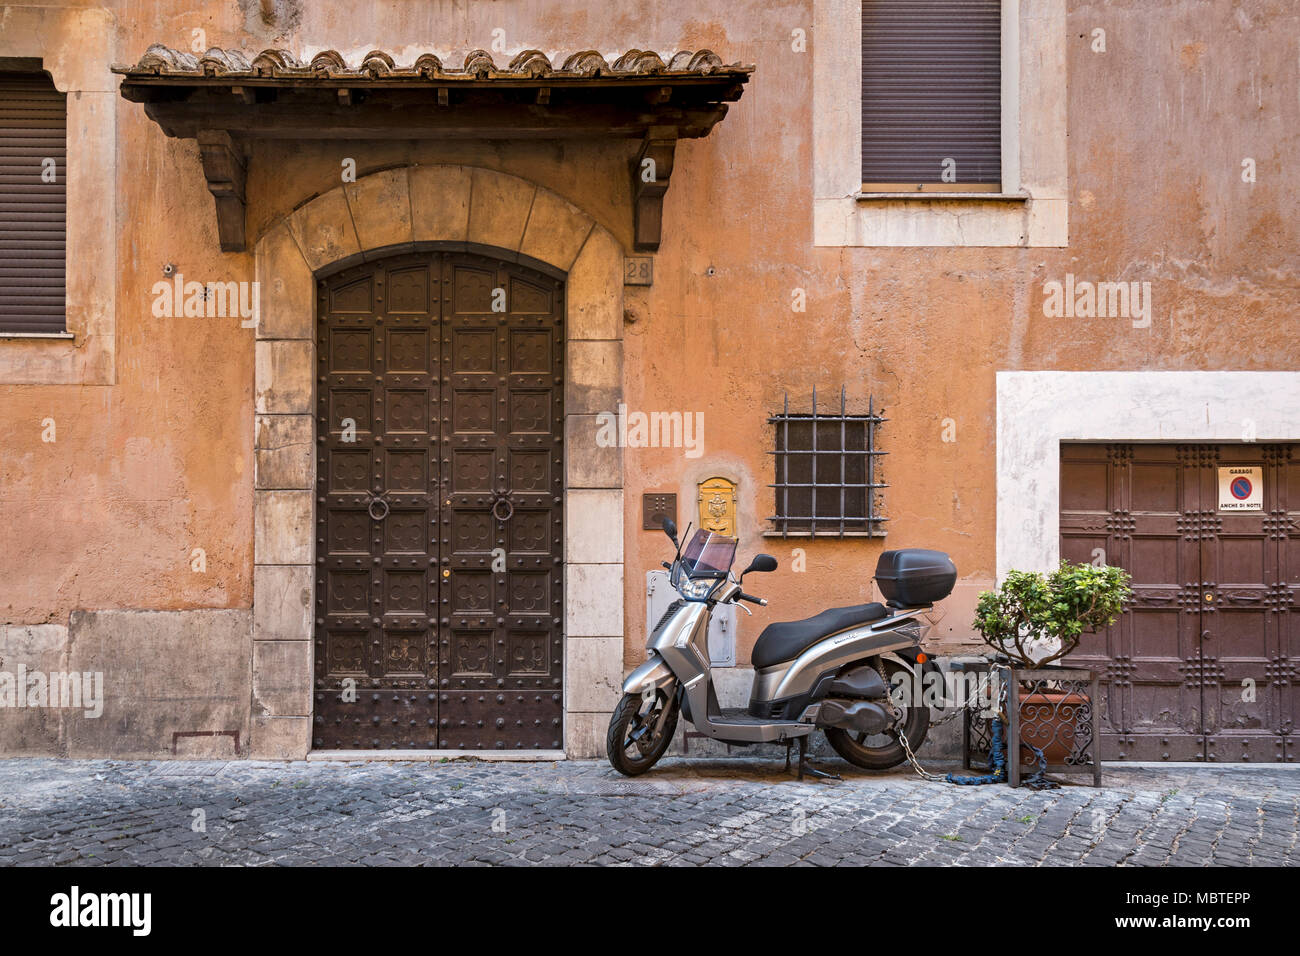 Is The Front Door Big Or The Garage Door Small A Residential Street In Rome Italy The Facade Of A Villa With Weathered Exterior In Shades Of Terrac Stock Photo Alamy